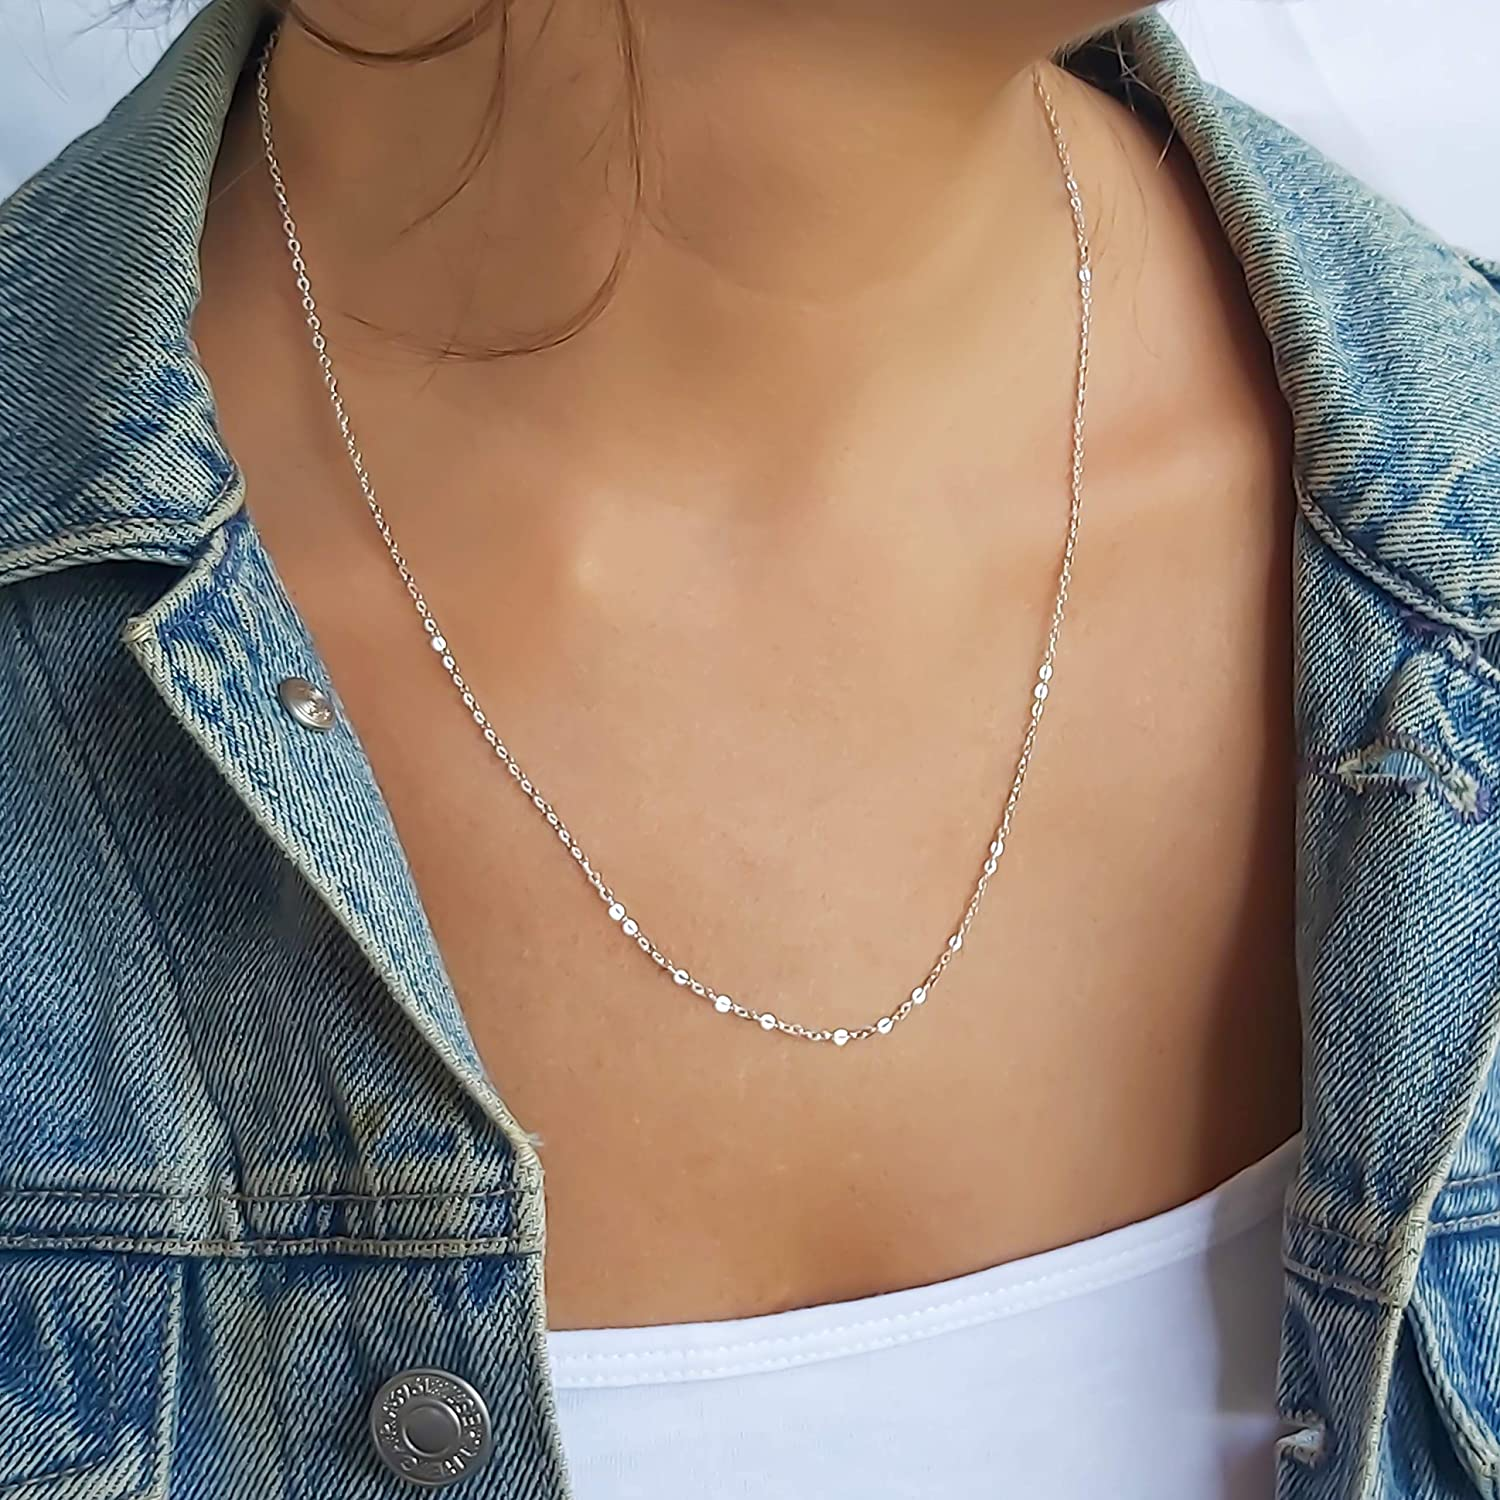 Sterling Silver Necklace, Long Chain Silver Necklace for Women, Minimalist Dainty Silver Necklace, Simple Sterling Silver Handmade Jewelry by Annikabella